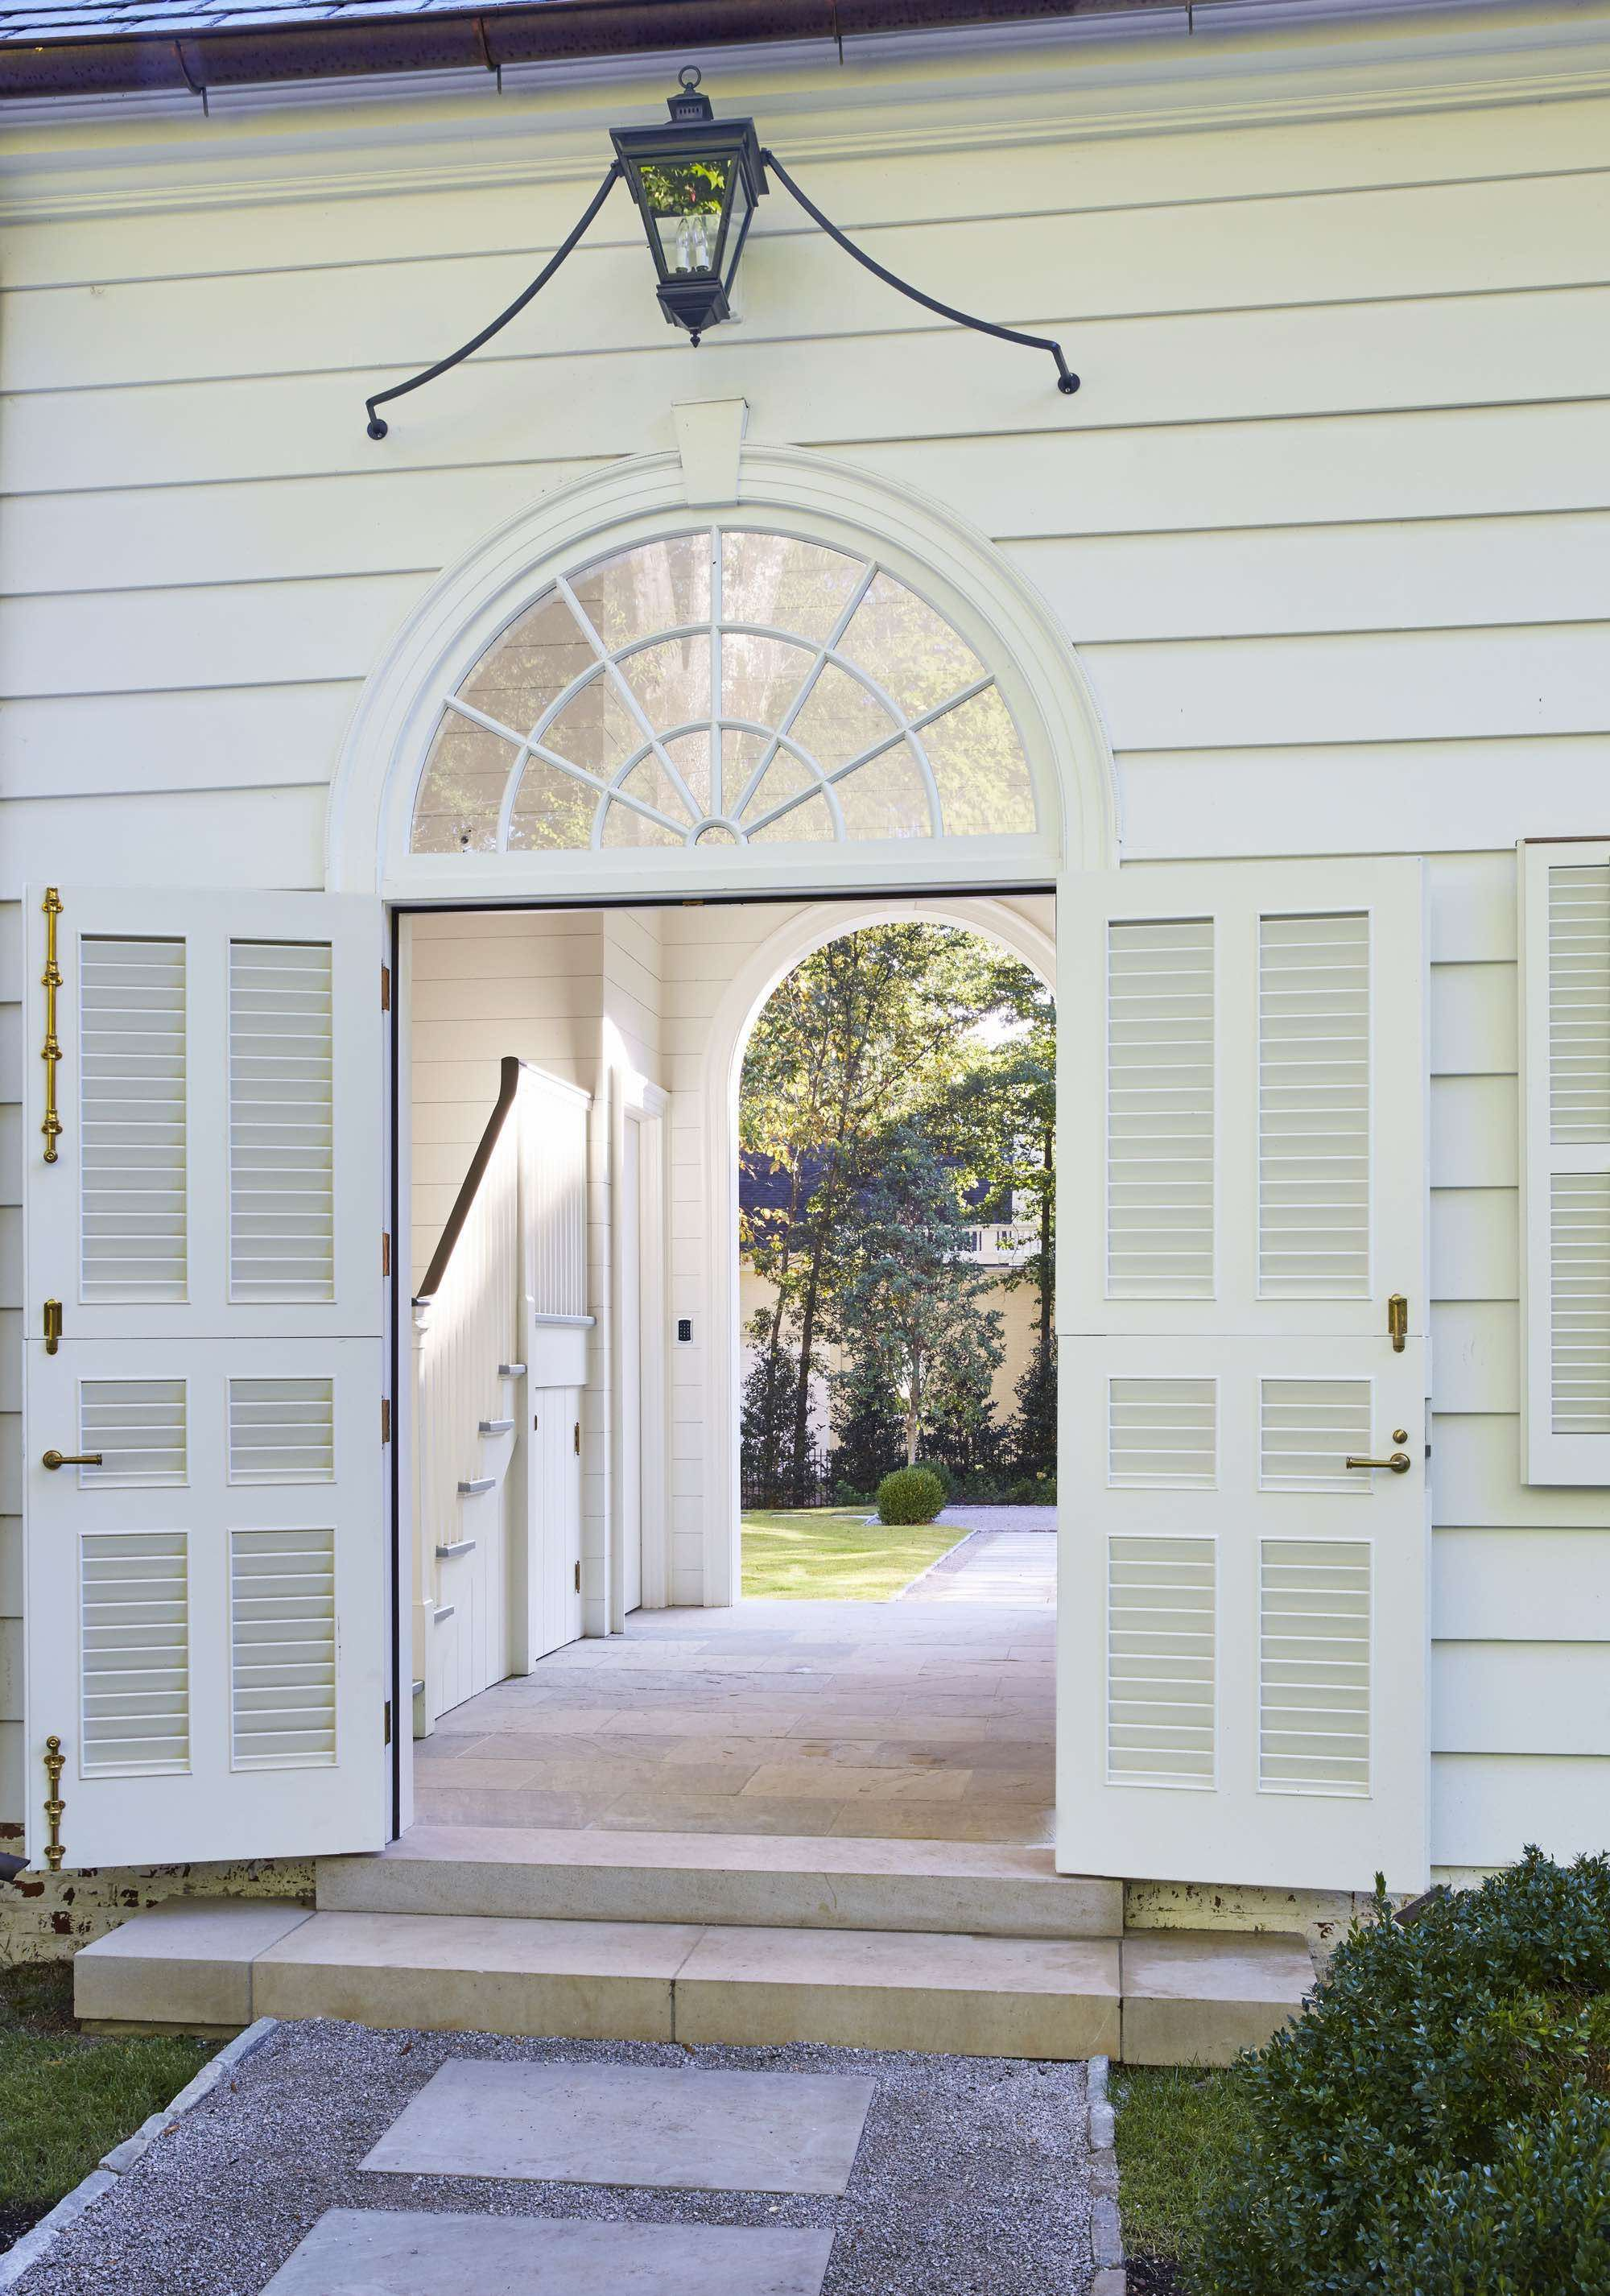 House in Memphis & House in Memphis | Doors and Gates | Pinterest | Memphis House and ...